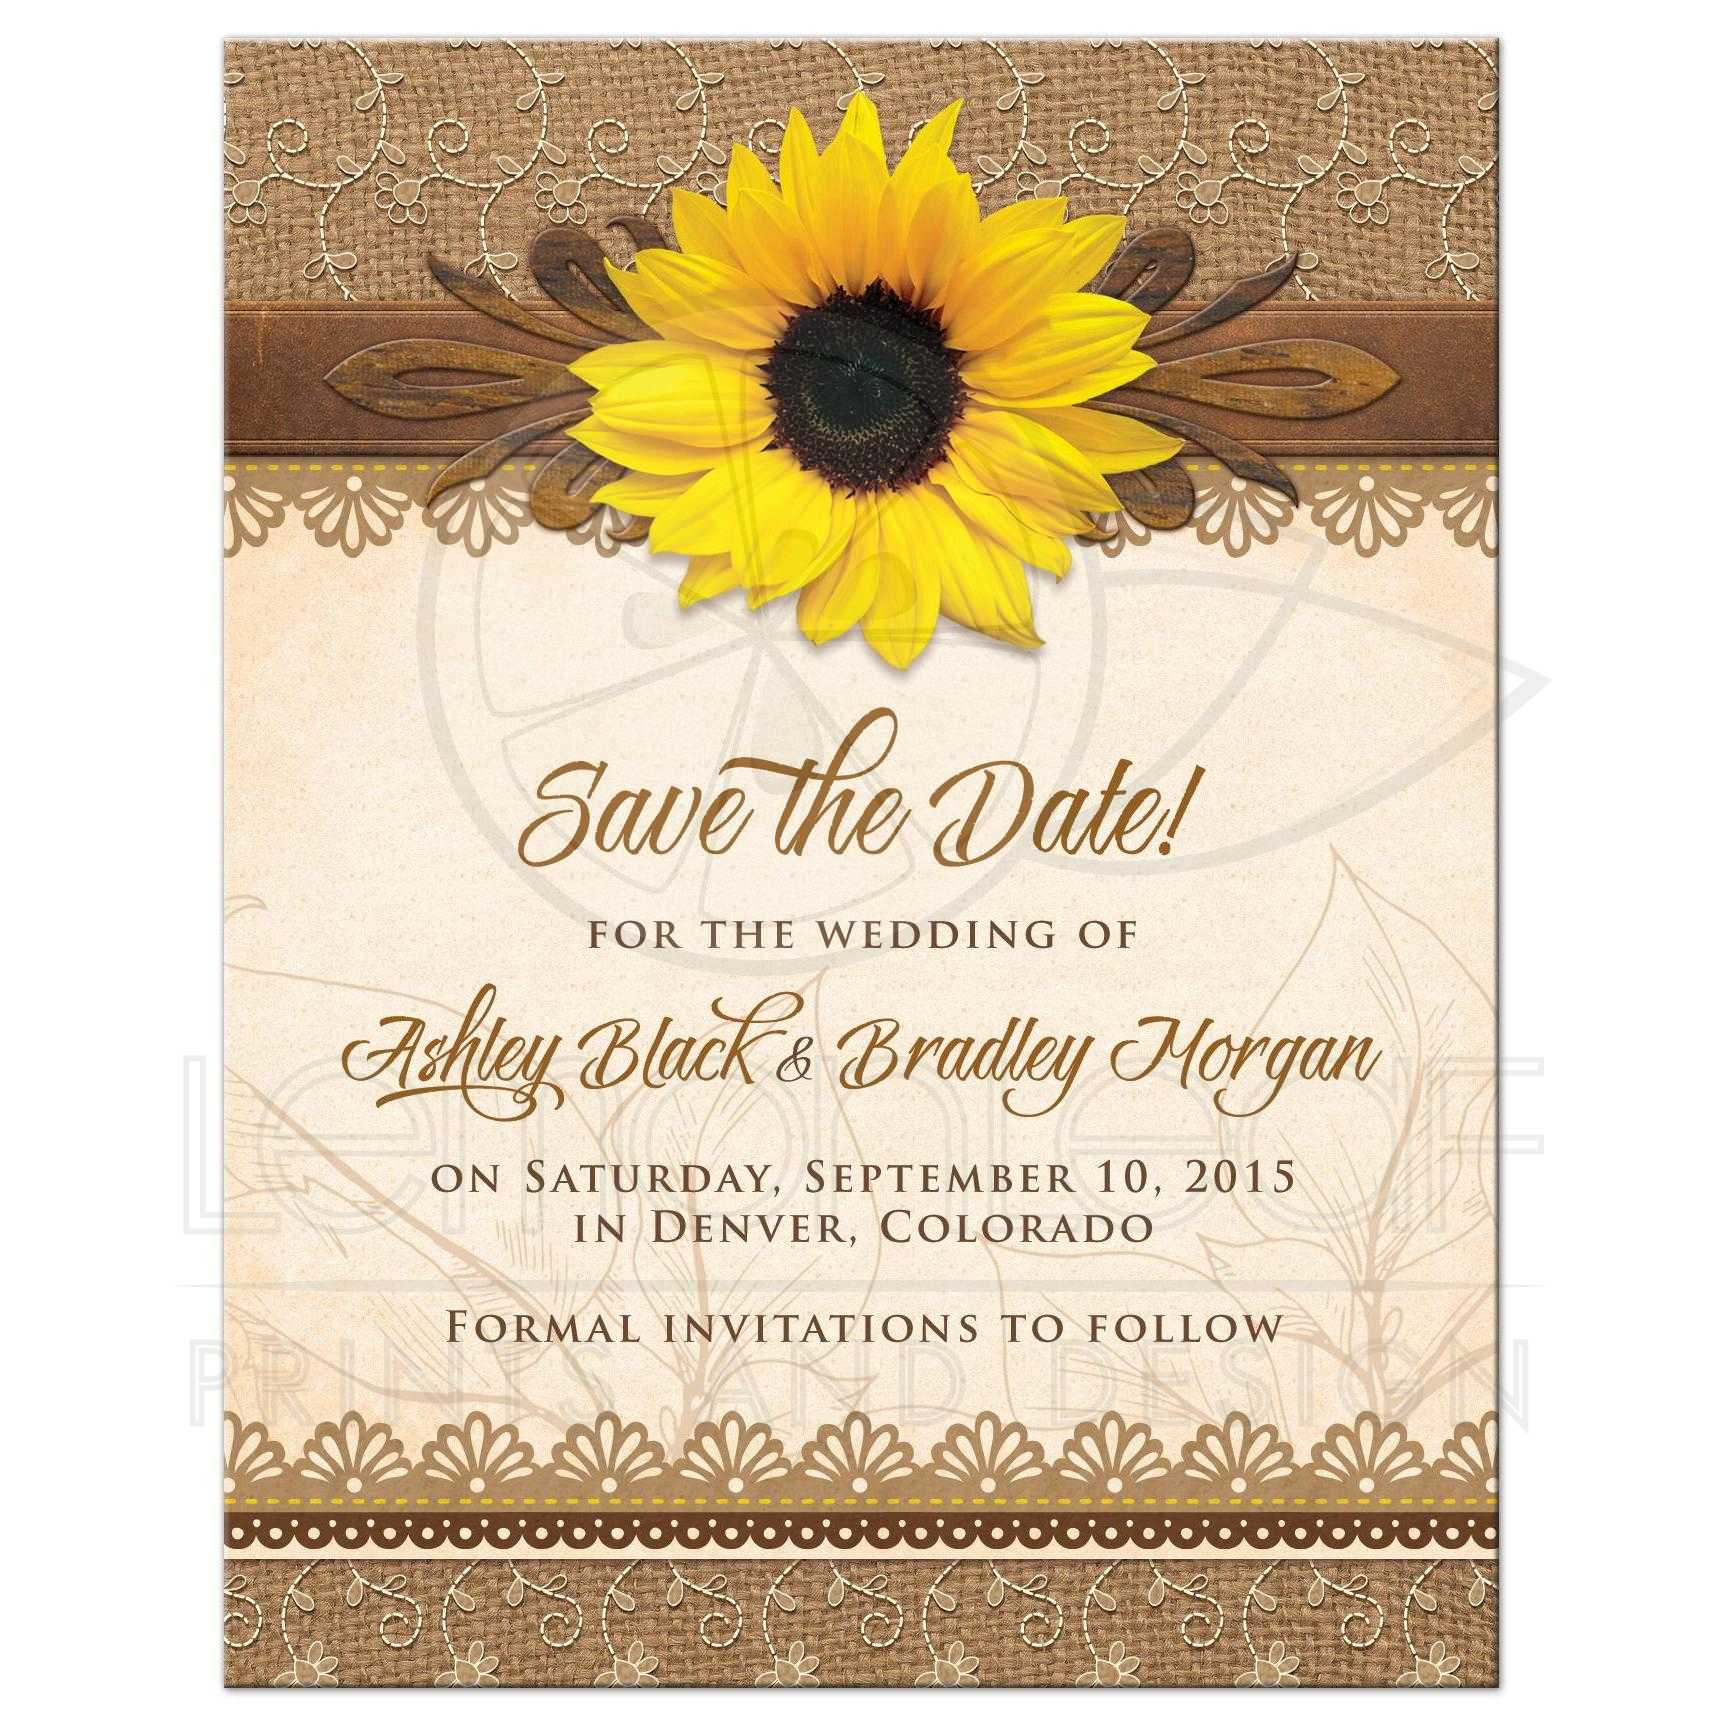 Office Opening Invitation was Amazing Ideas To Create Luxury Invitations Layout